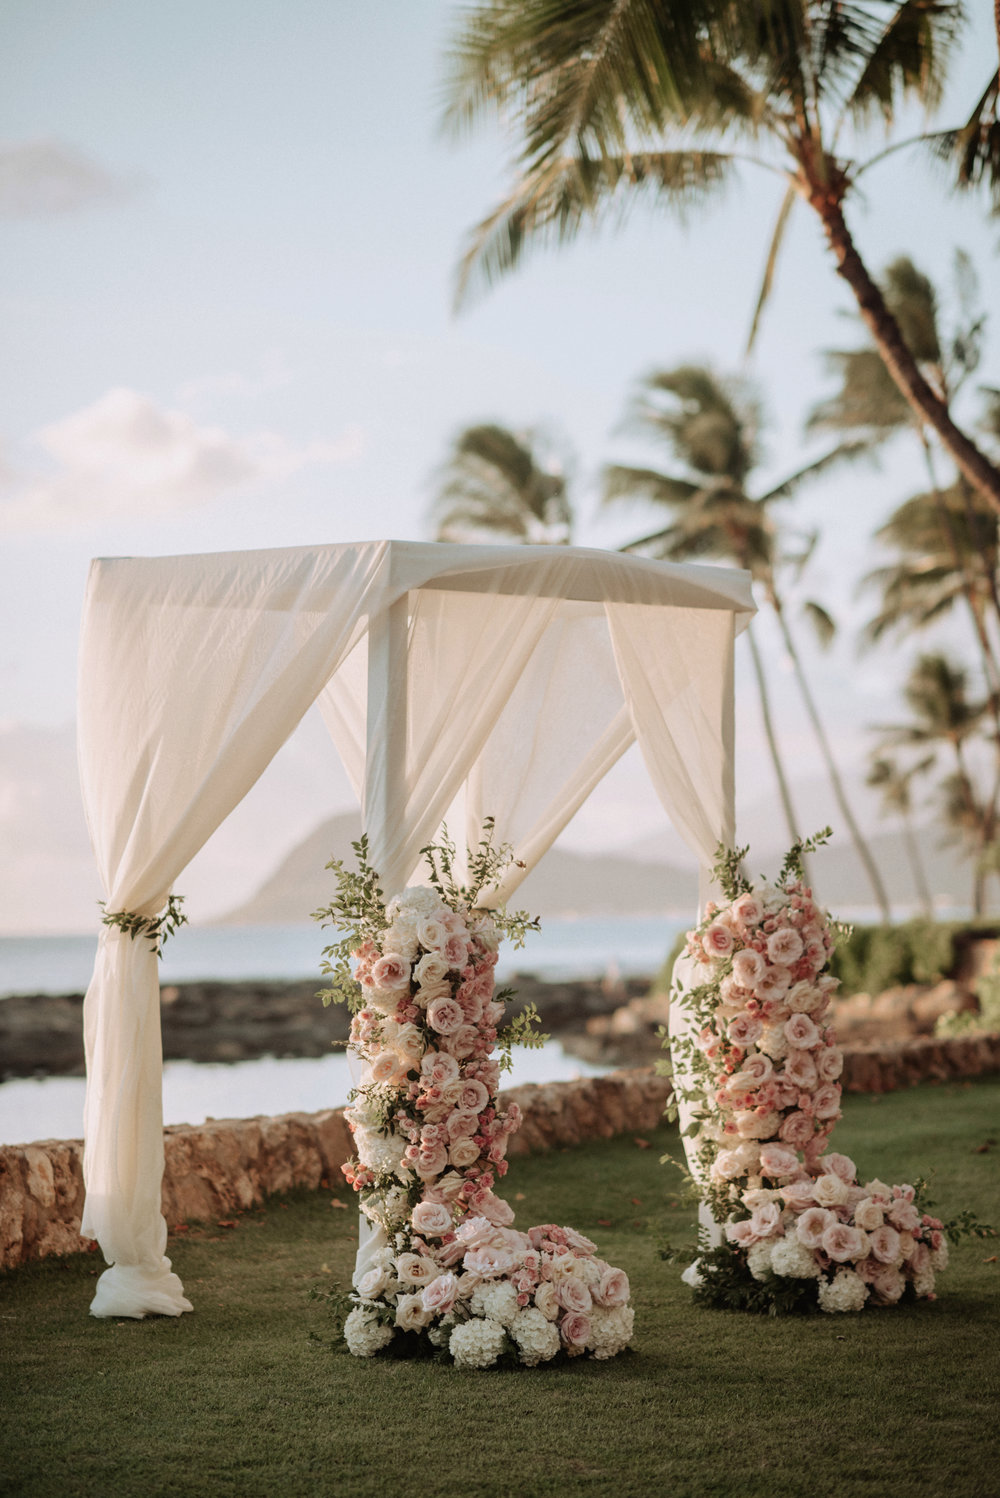 ceremony floral design by Passion Roots | June Cochran Photography | Oahu, Hawaii